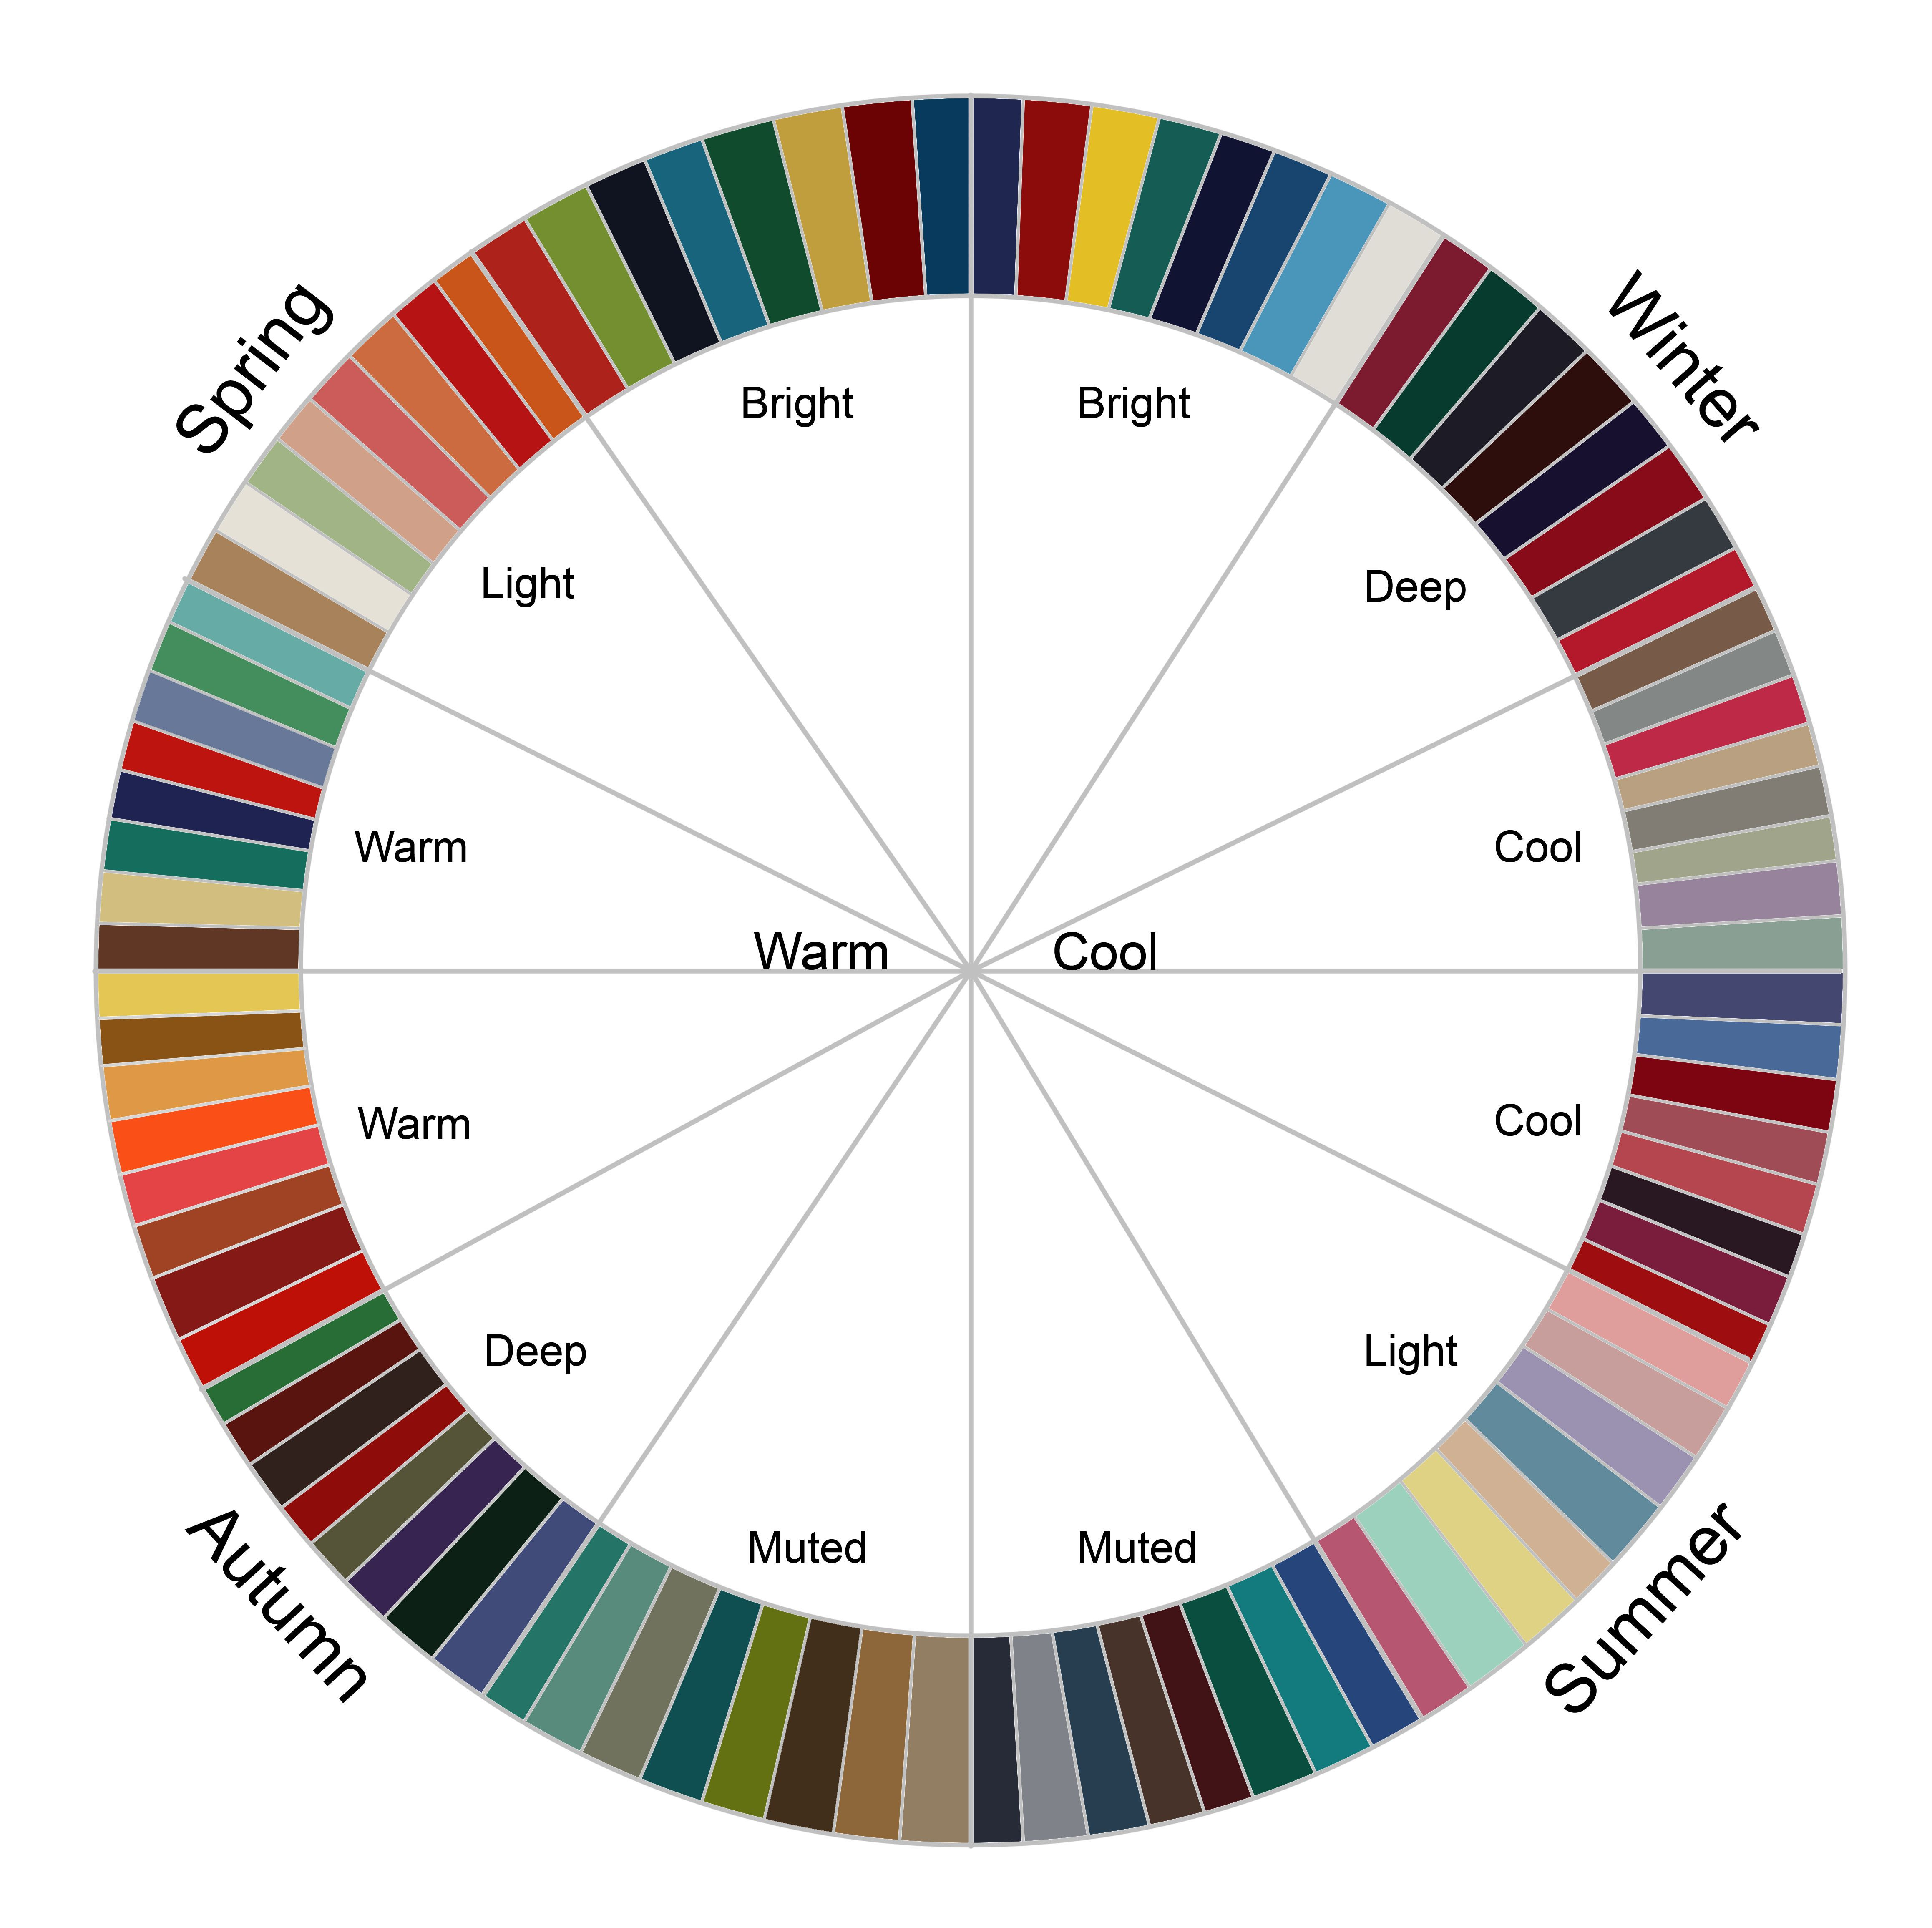 Season Colour Palettes | Season colors, Color wheels and Wheels